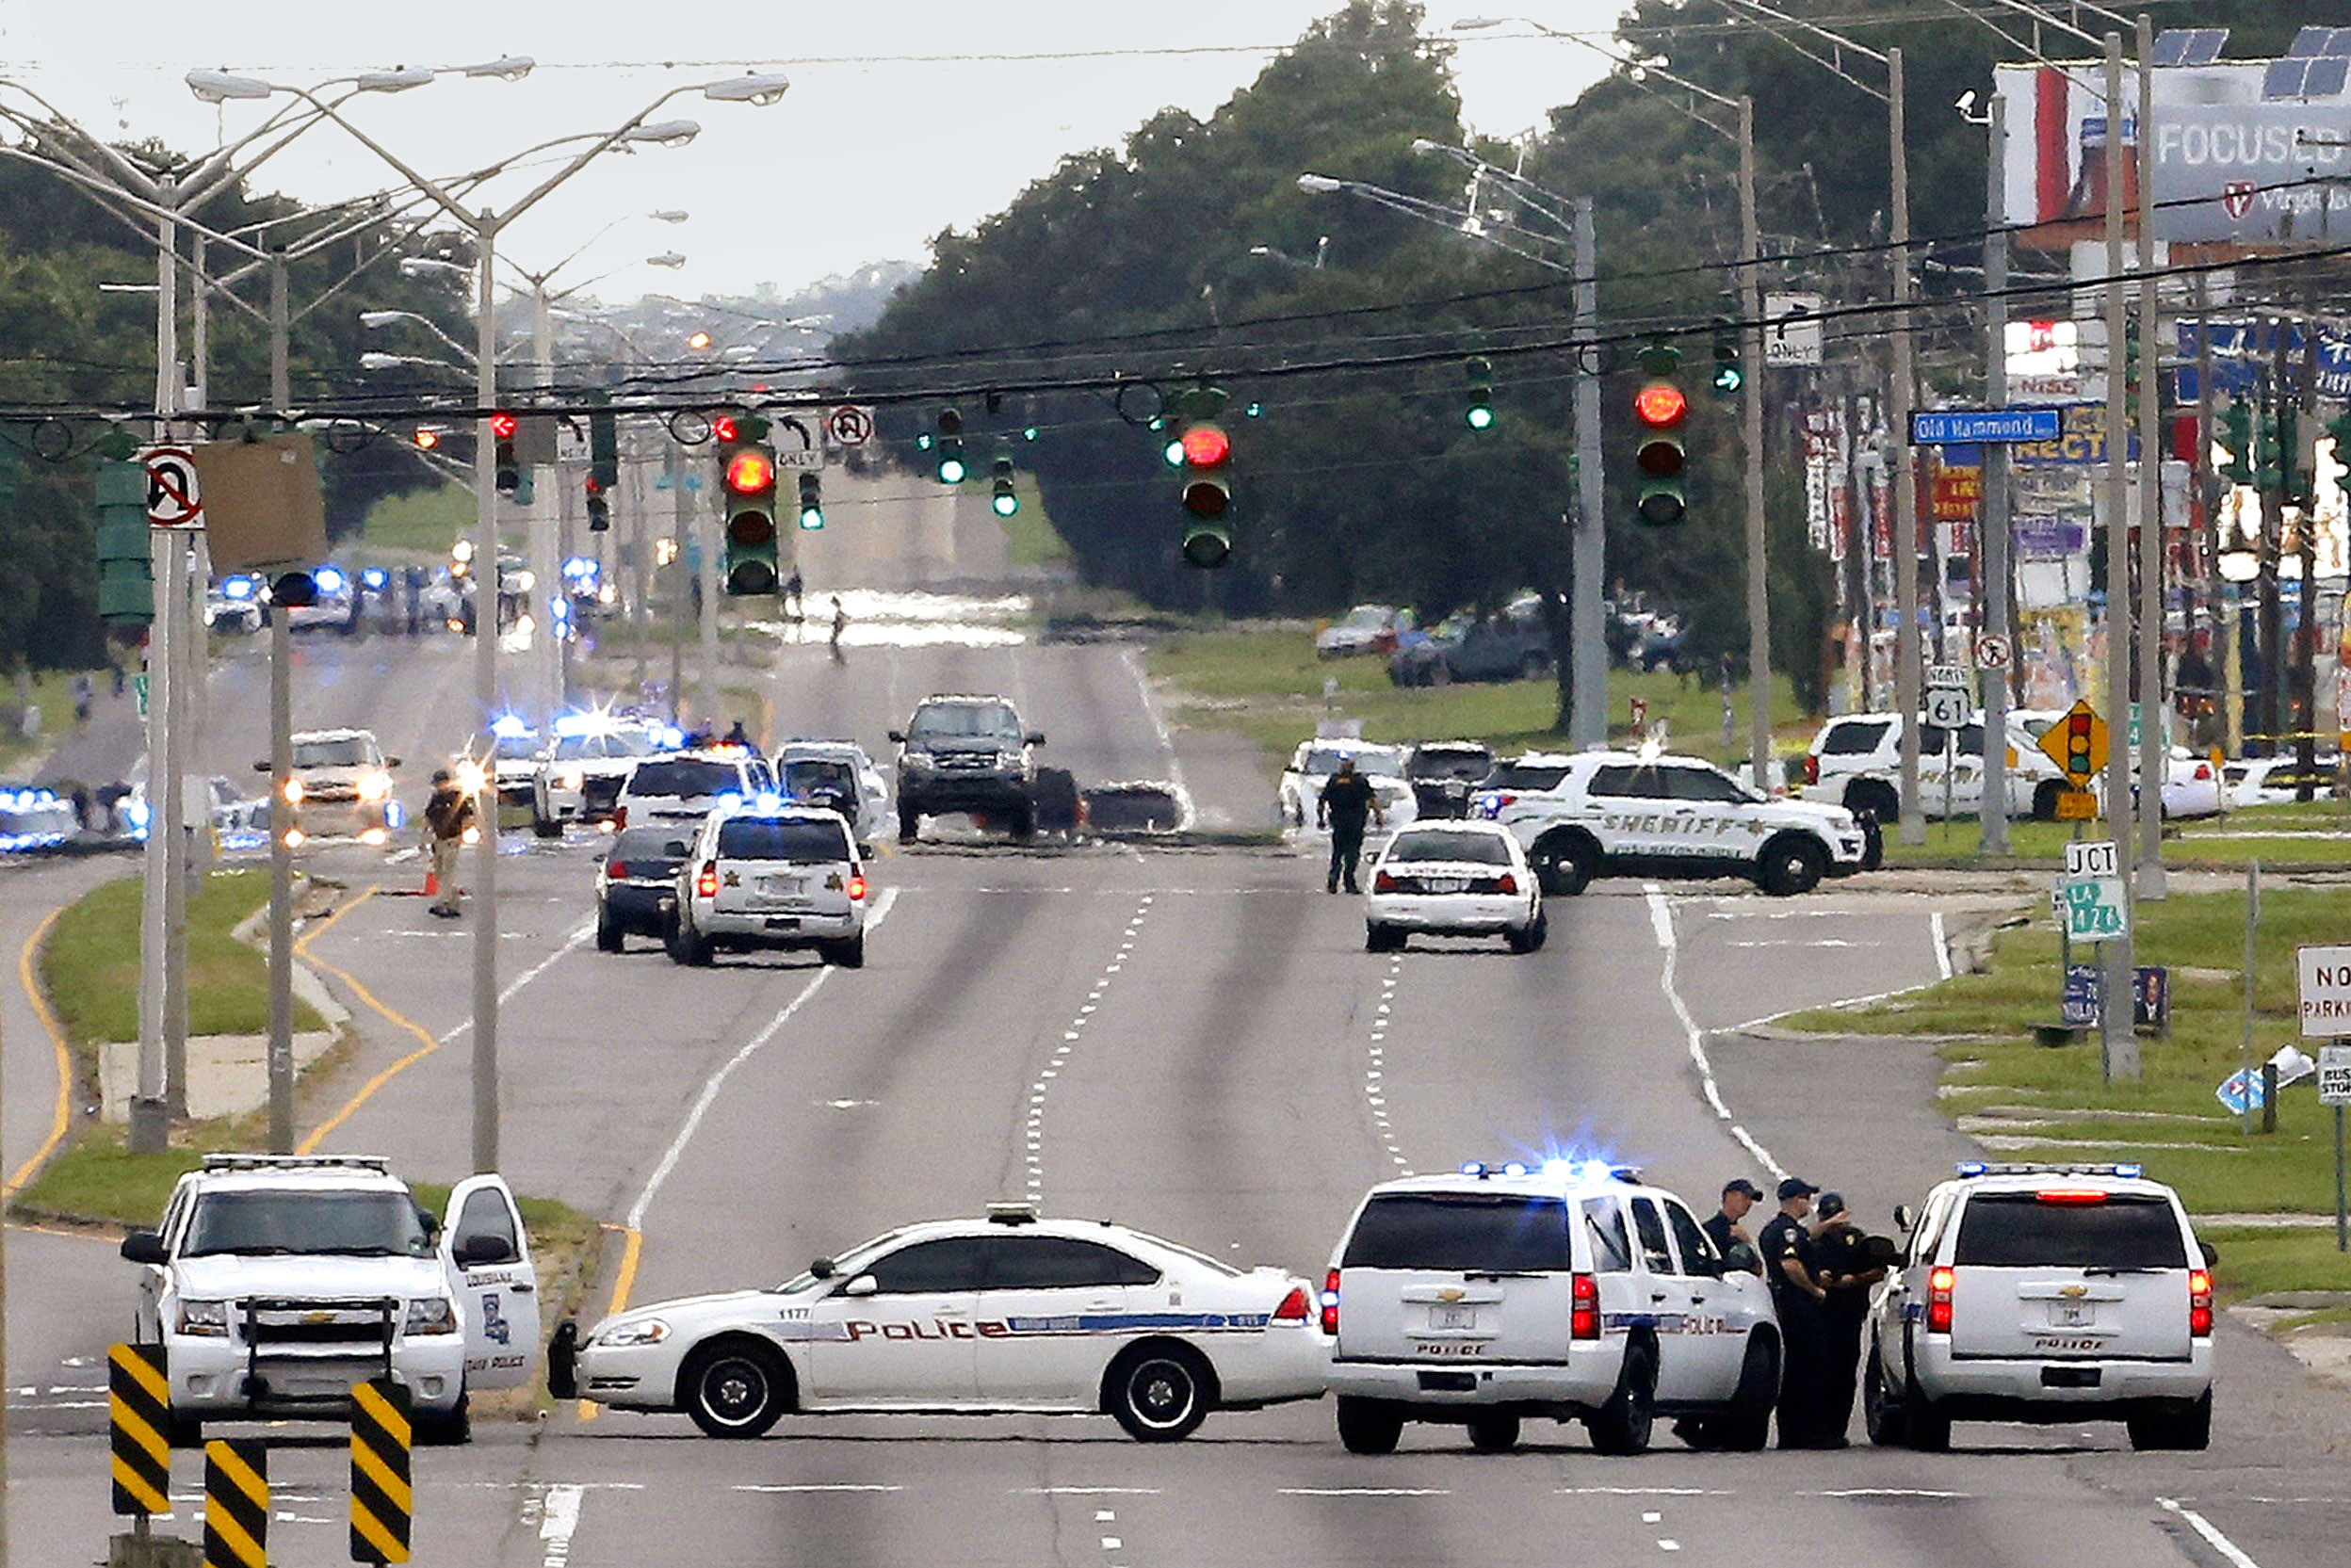 On July 17, police responded to the fatal shooting of three officers in Baton Rouge